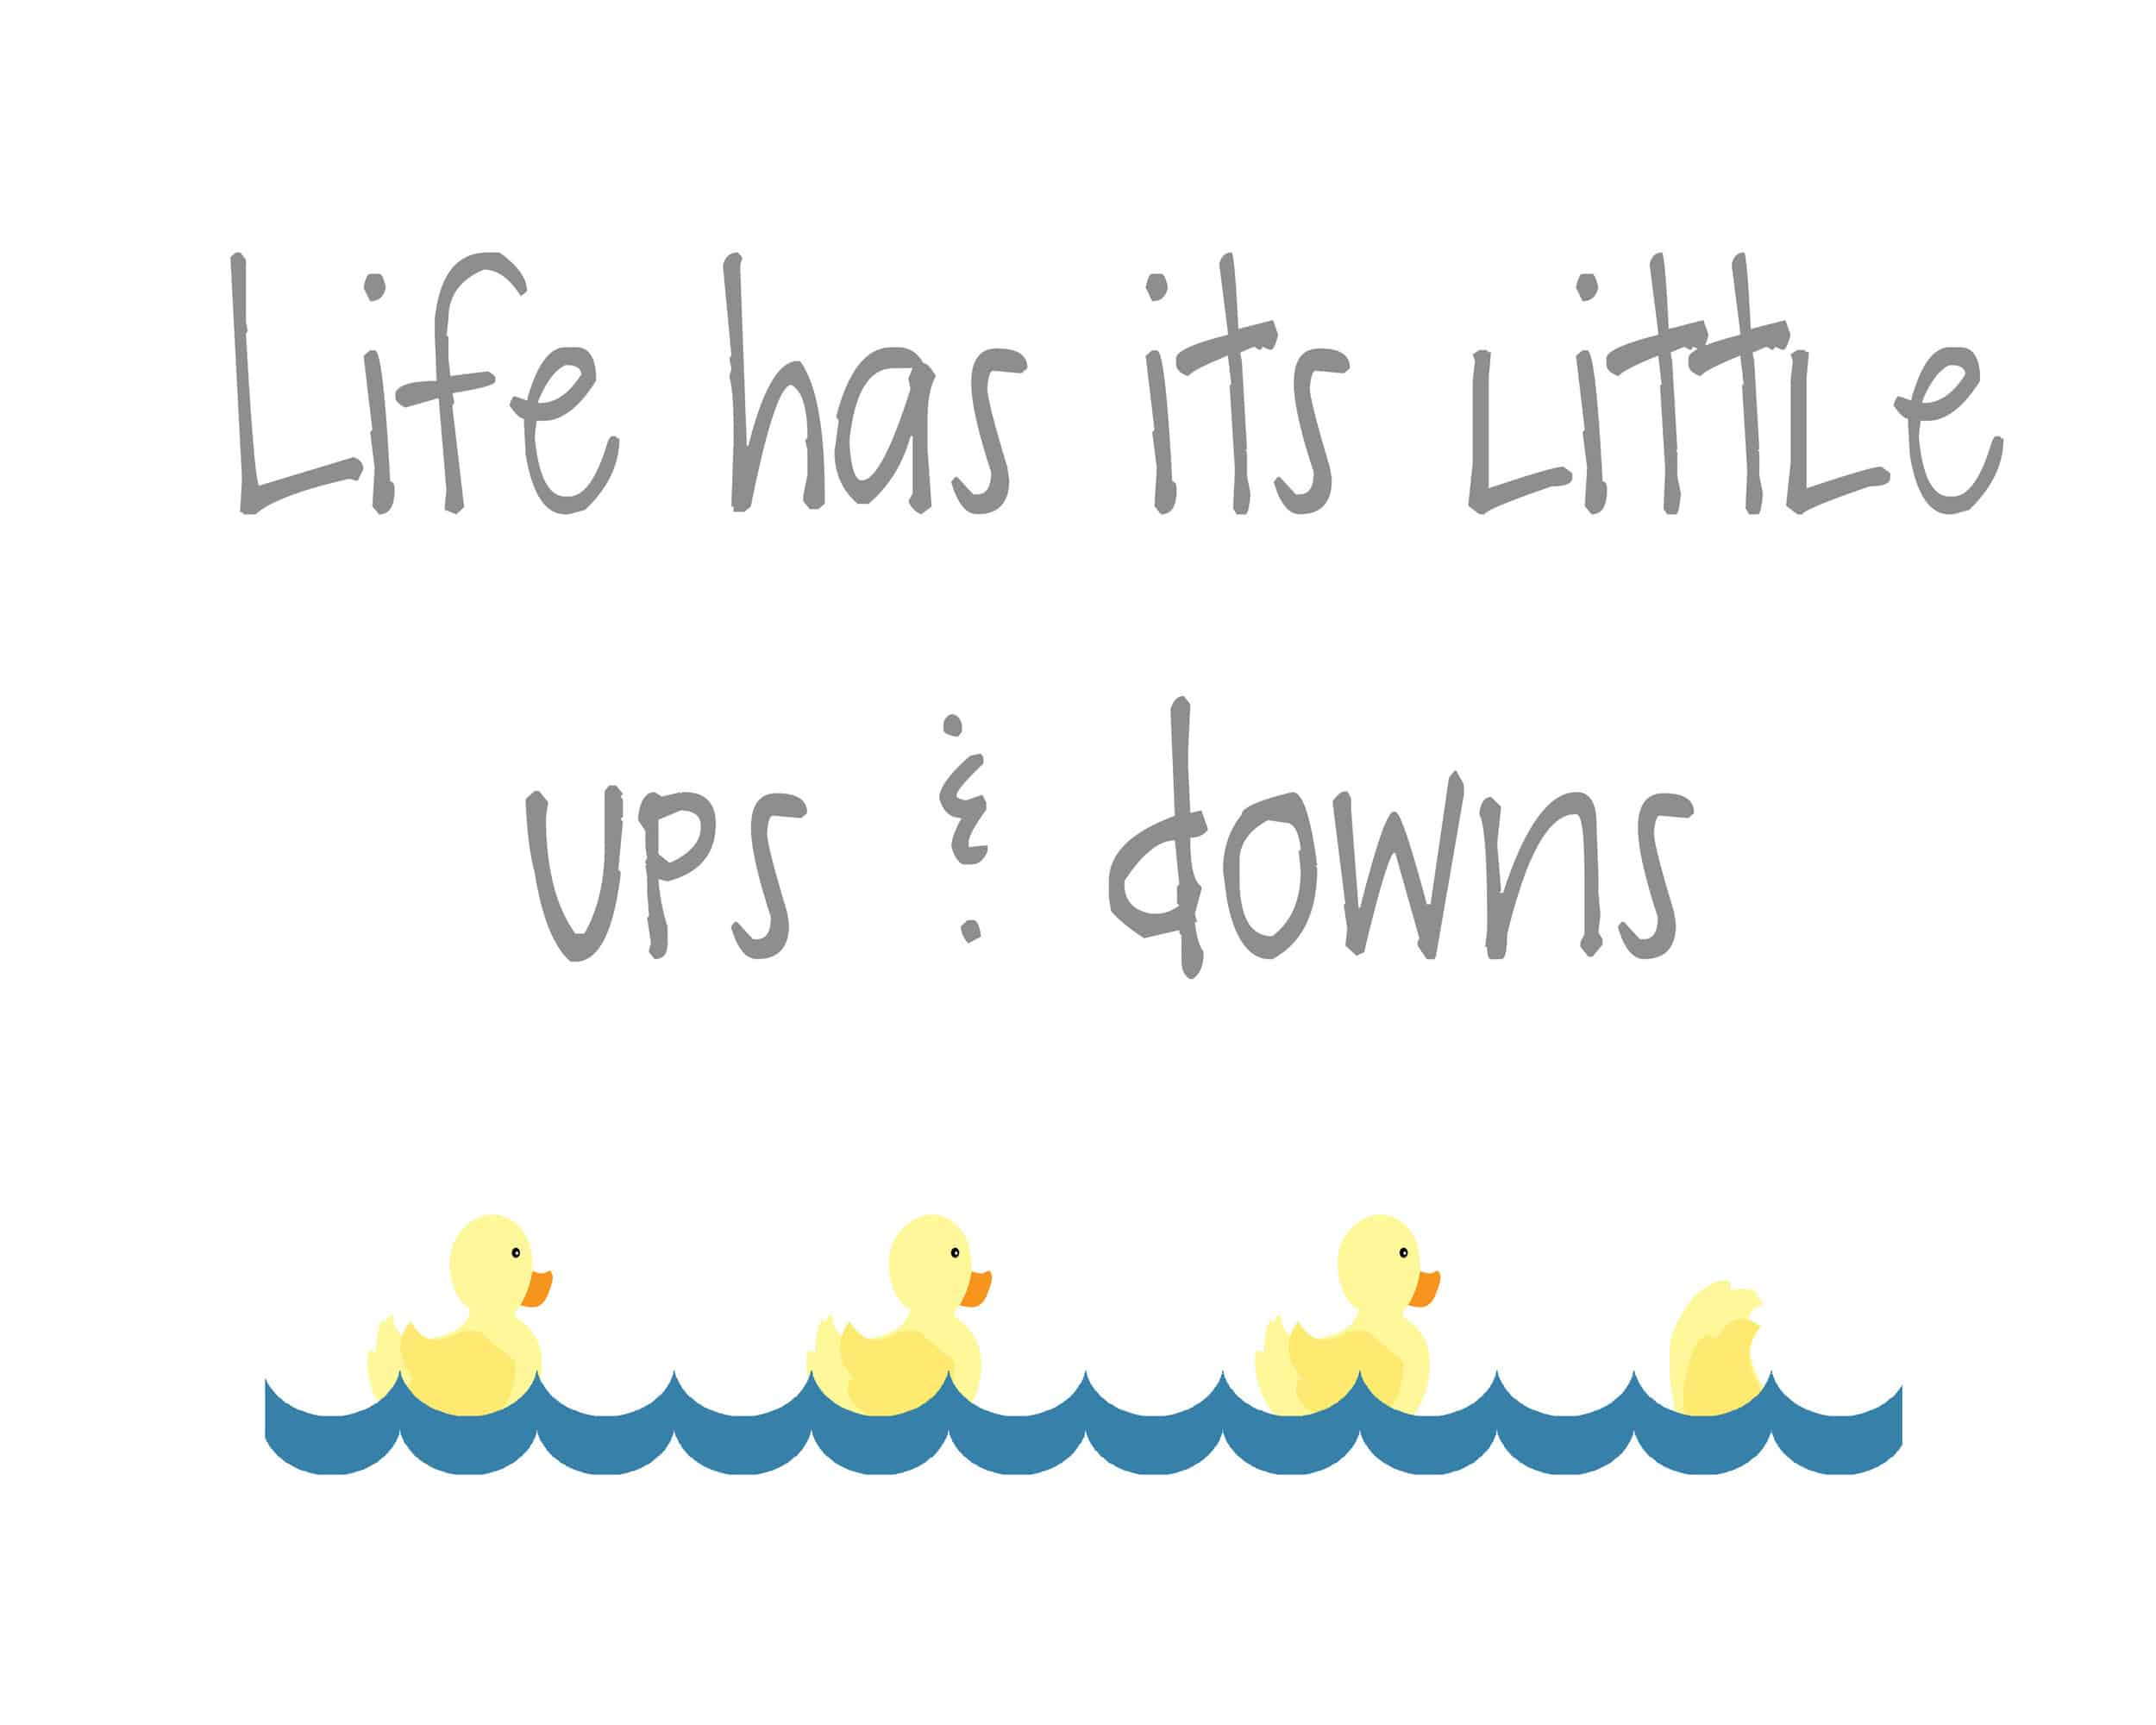 life of ups and downs Synonyms of ups and downs: fluctuations, changes, vicissitudes, moods, wheel of fortune | collins english thesaurus.